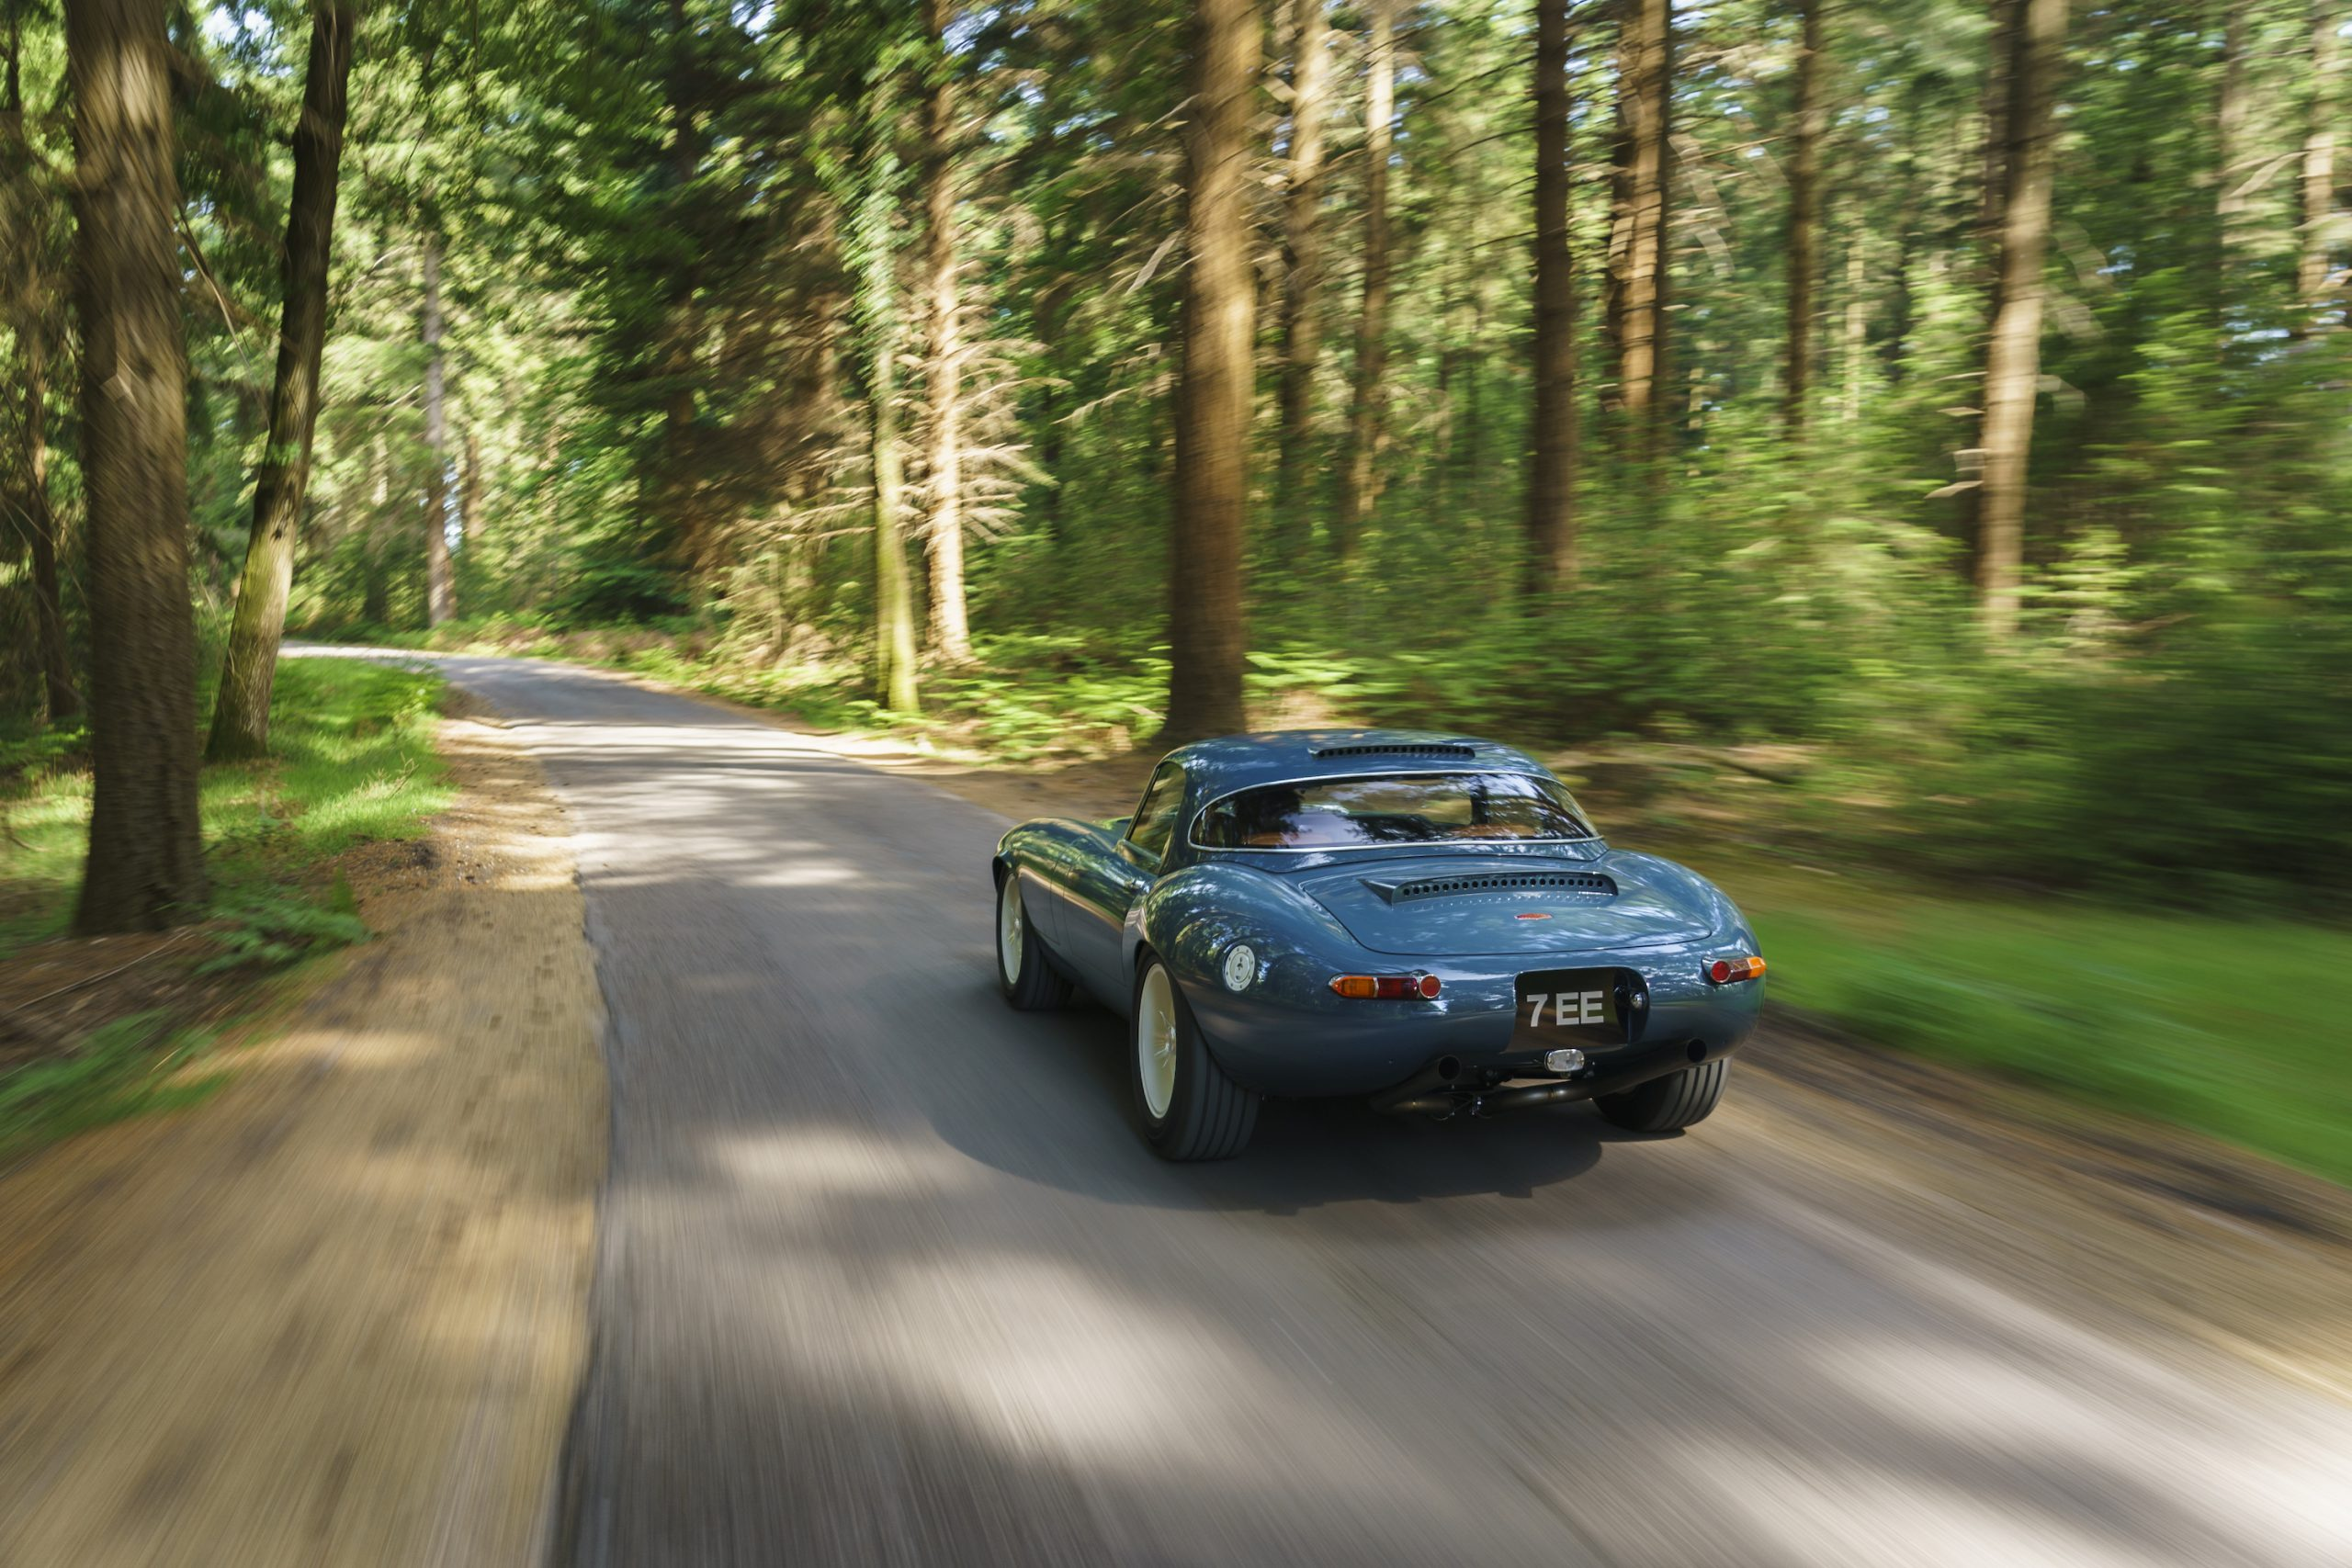 Eagle E-type Lightweight GT Rear Three-Quarter Road Action